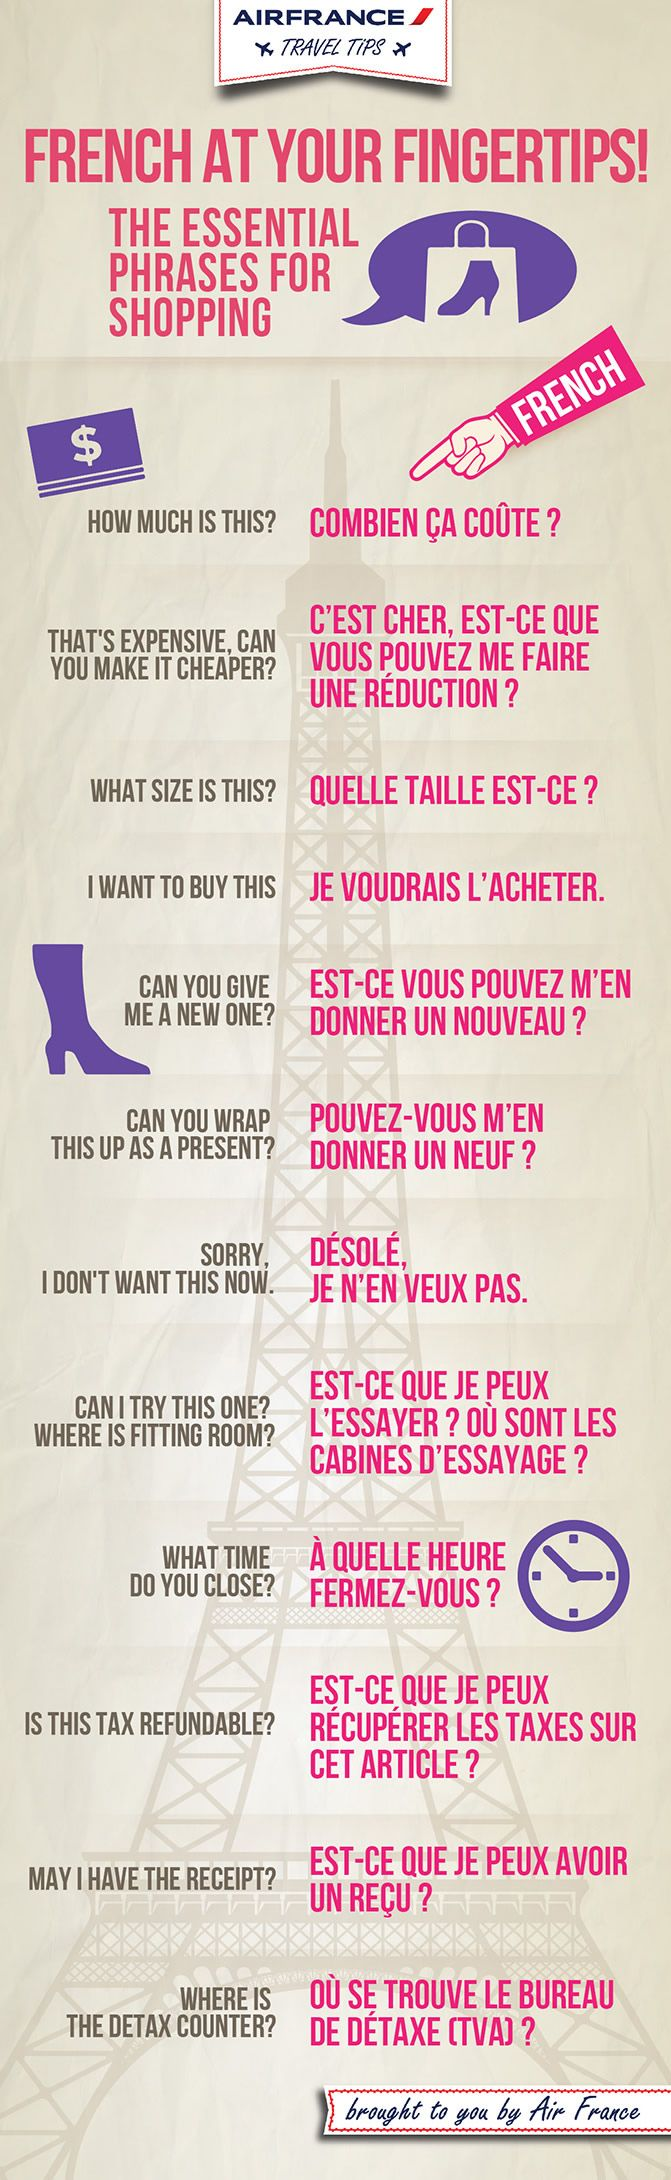 @Melissa Squires Squires Squires Niednagel ...this will come in handy on our Parisian excursion... ;)